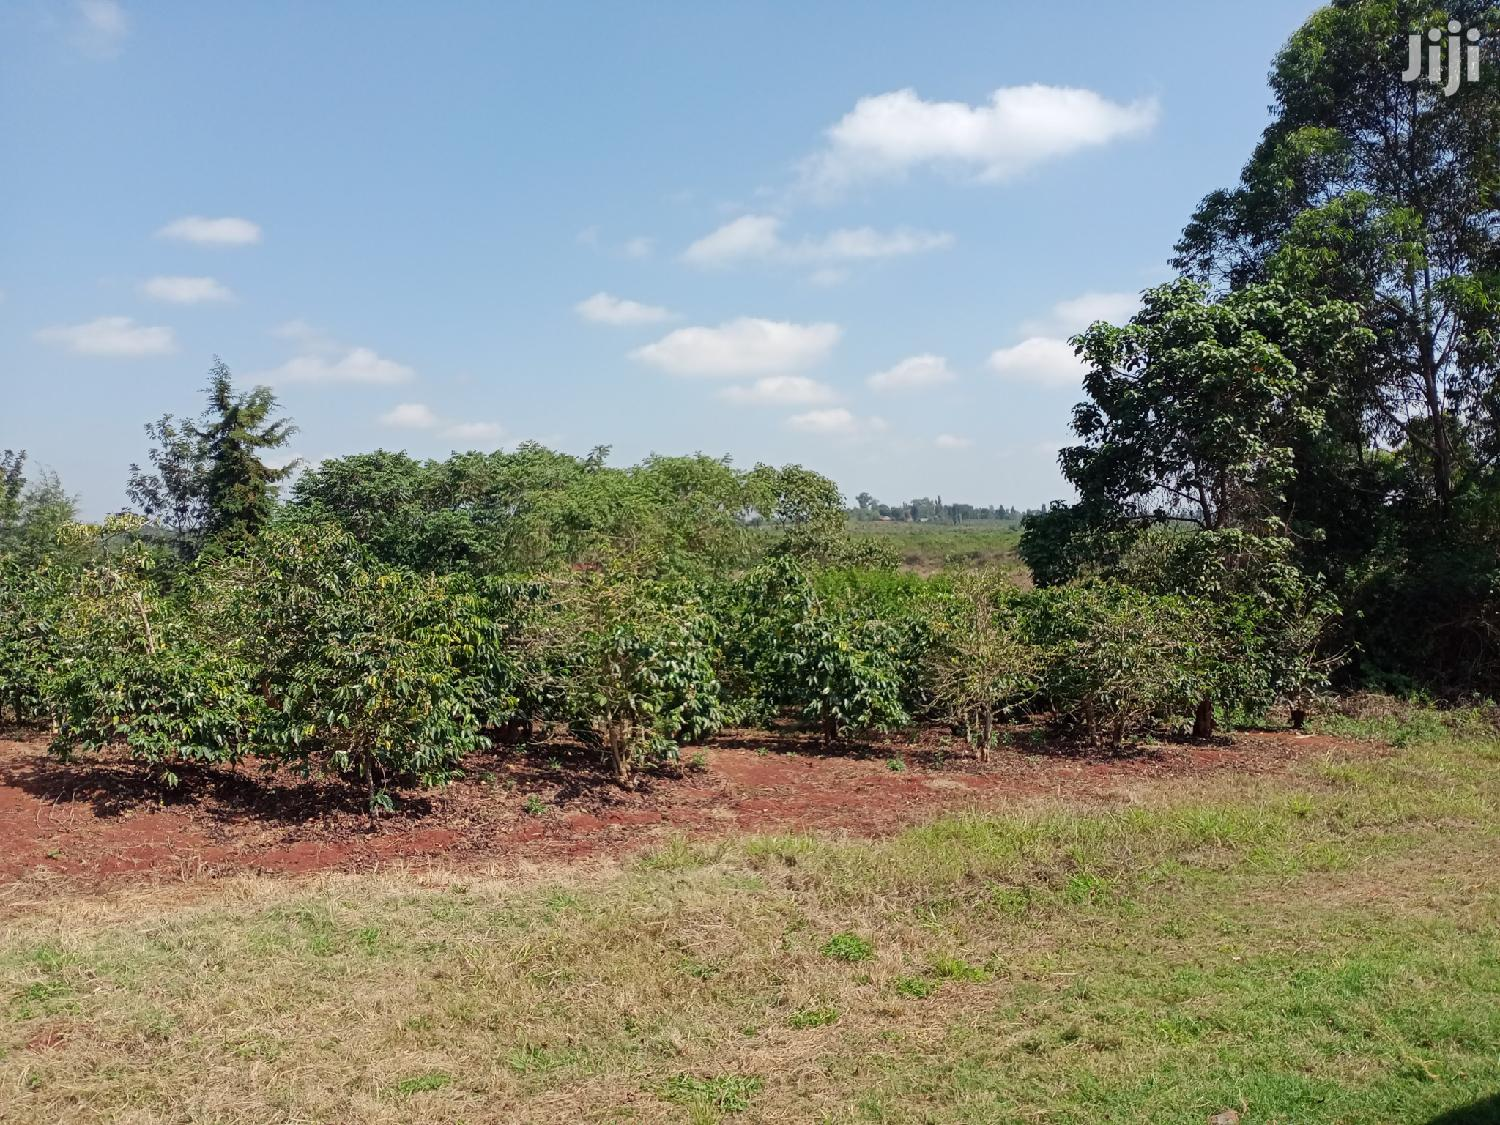 100acres JUJA ON Thika Superhighway Ideal 4 Subdivision, Dev